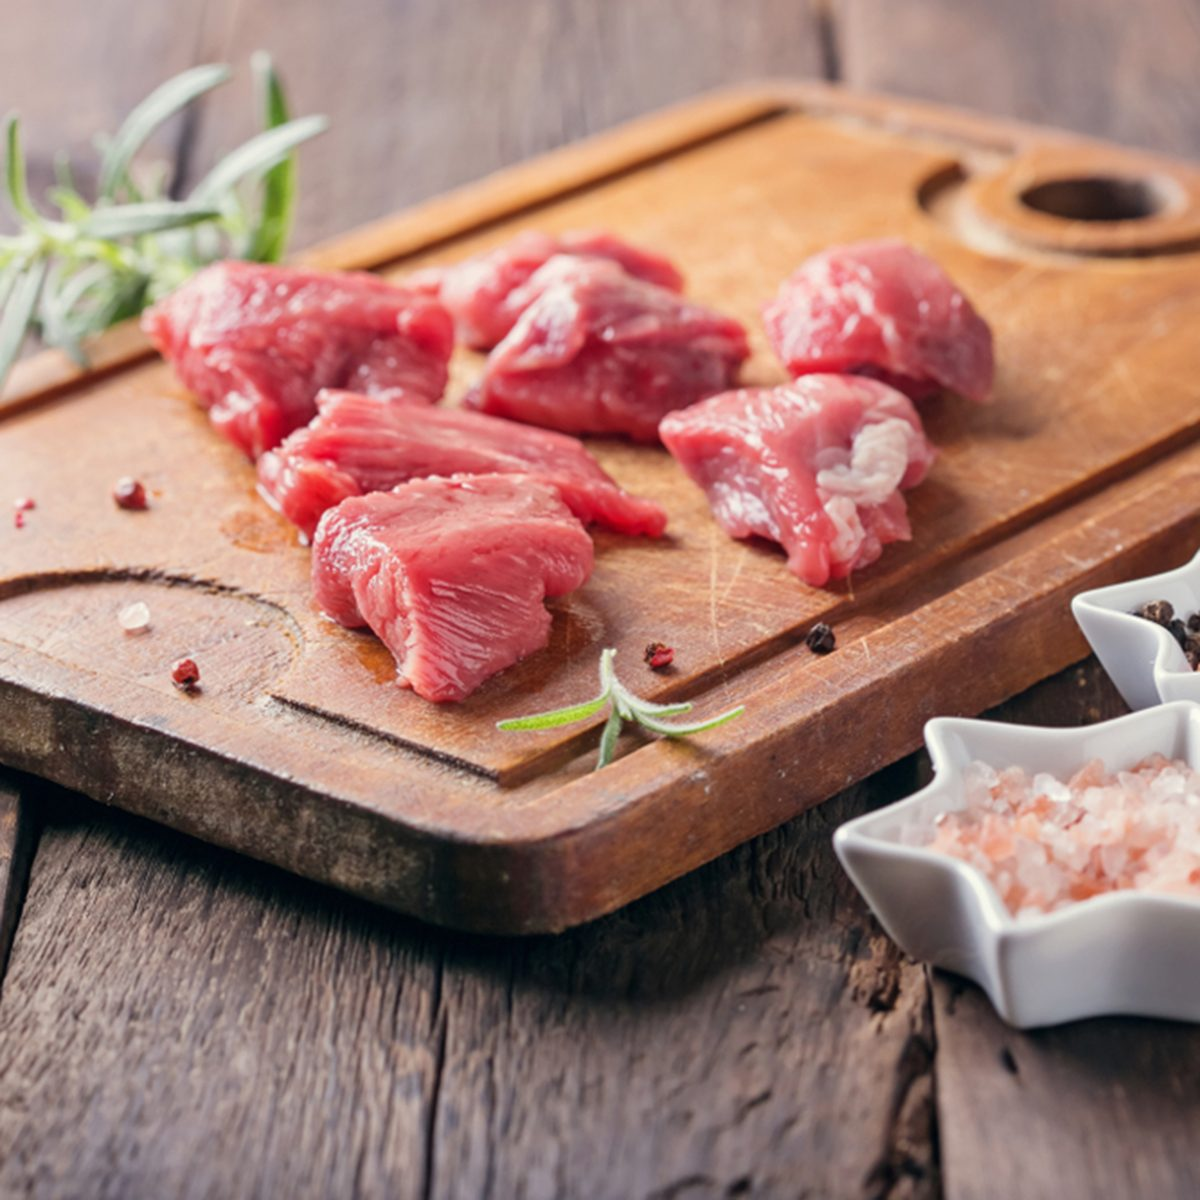 raw meat prepared for cooking on a kitchen board